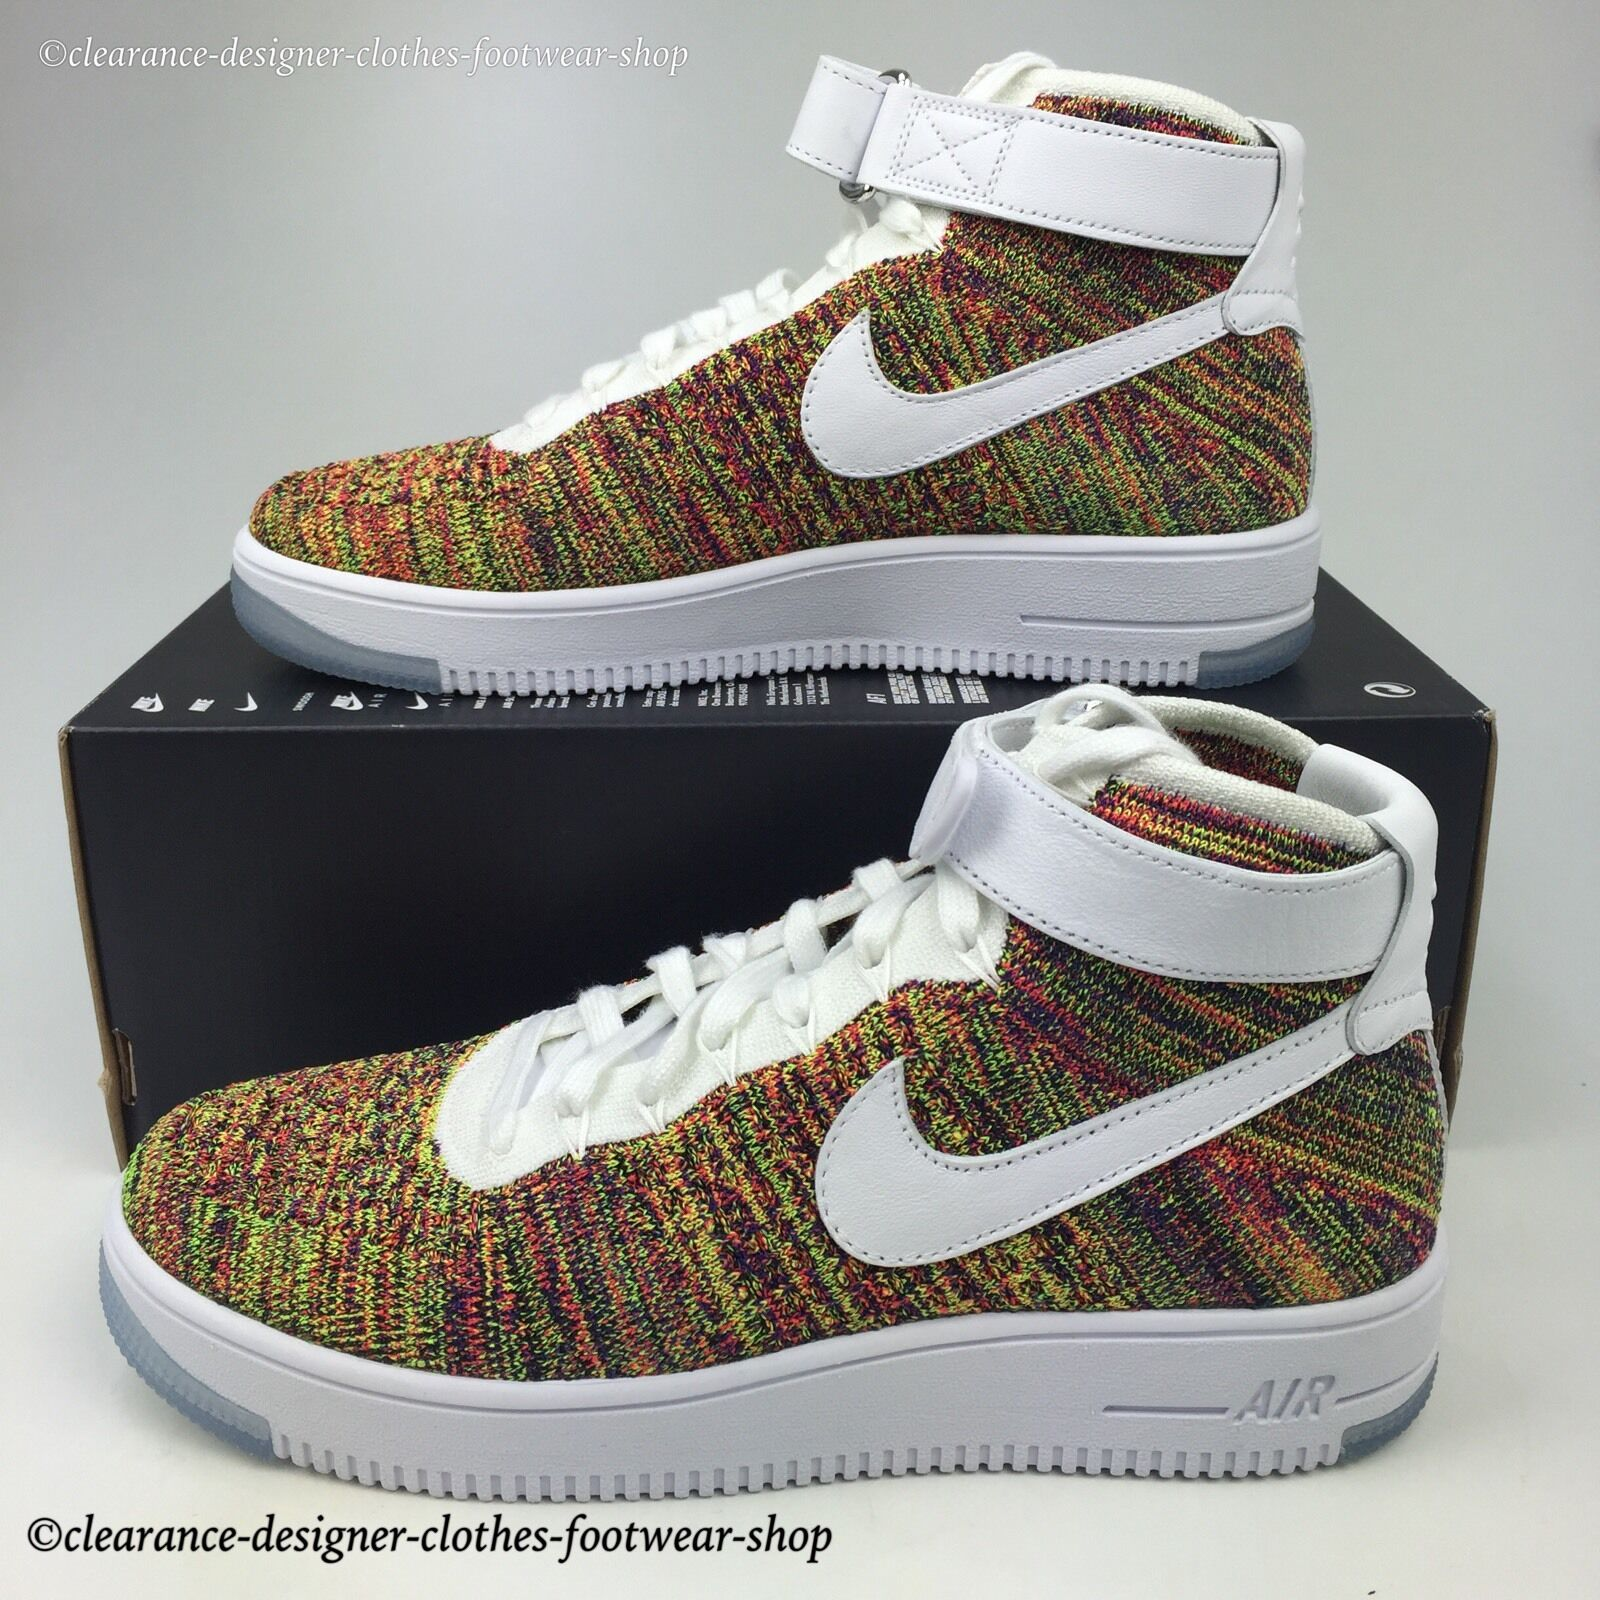 NIKE AIR Obliger 1 ULTRA FLYKNIT MID TRAINERS NEW homme MULTI MULTI homme COLOUR chaussures  150 4c7cd0